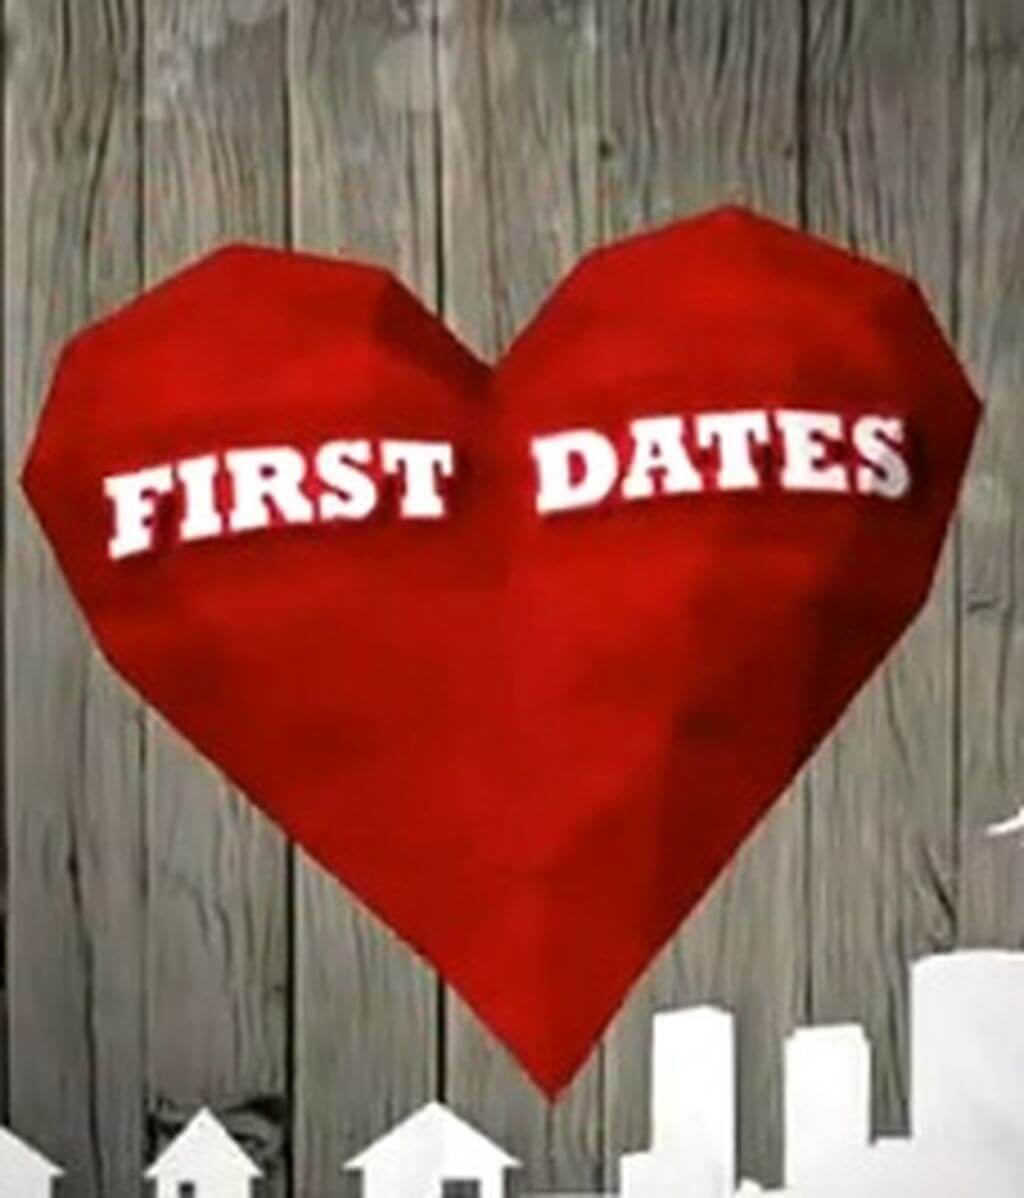 En first dates pagan la cena